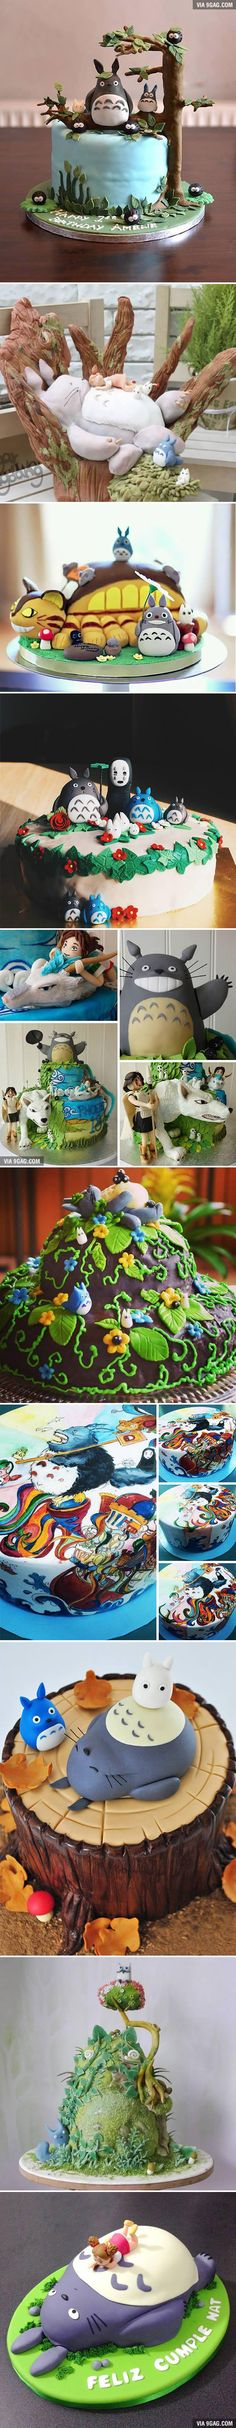 10 Totoro Cakes That Are Too Cute To Eat